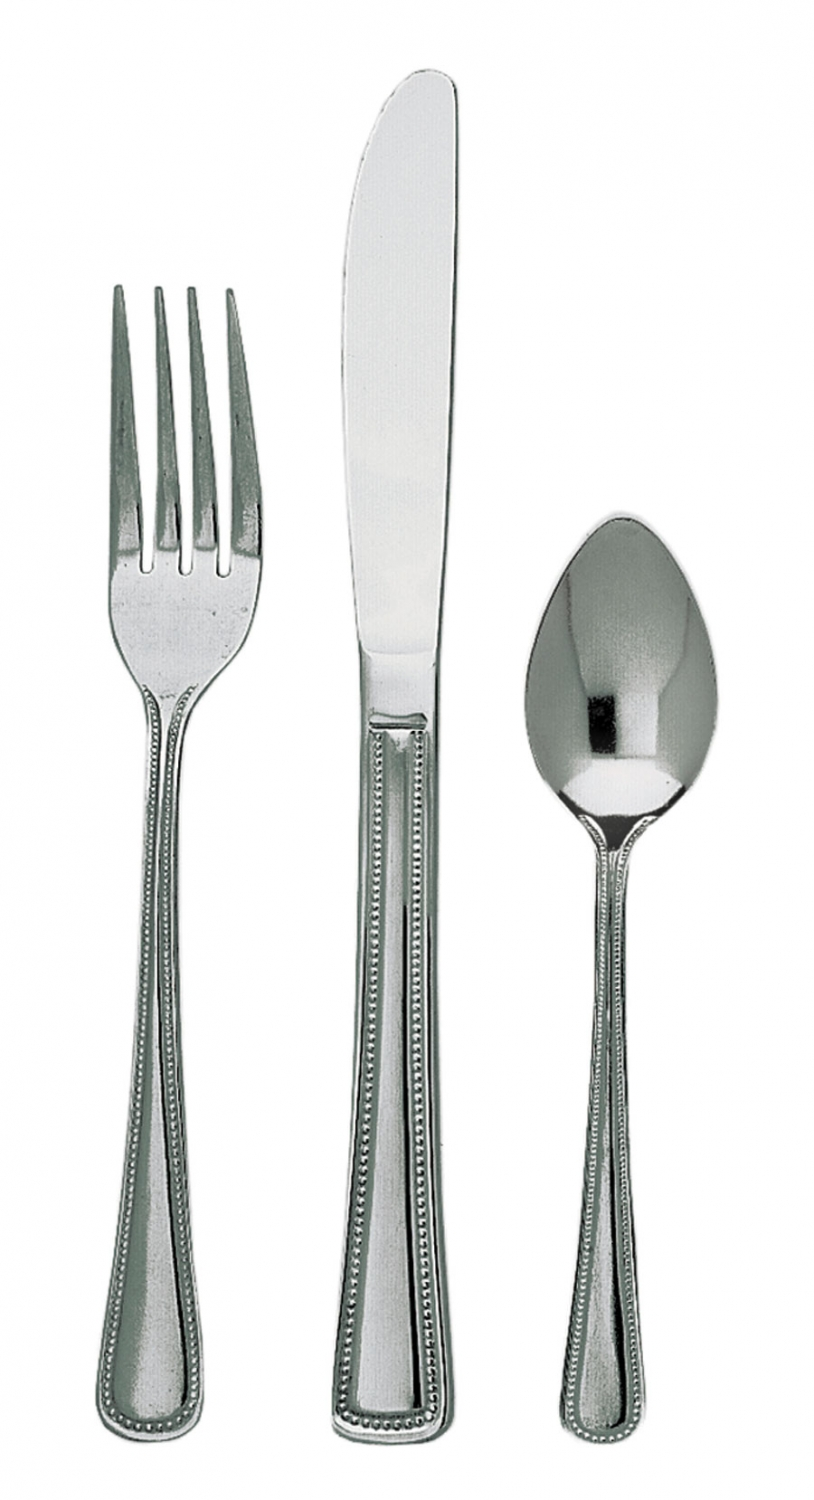 Update International HL-406 Harbor-Lite Salad Fork - 1 doz